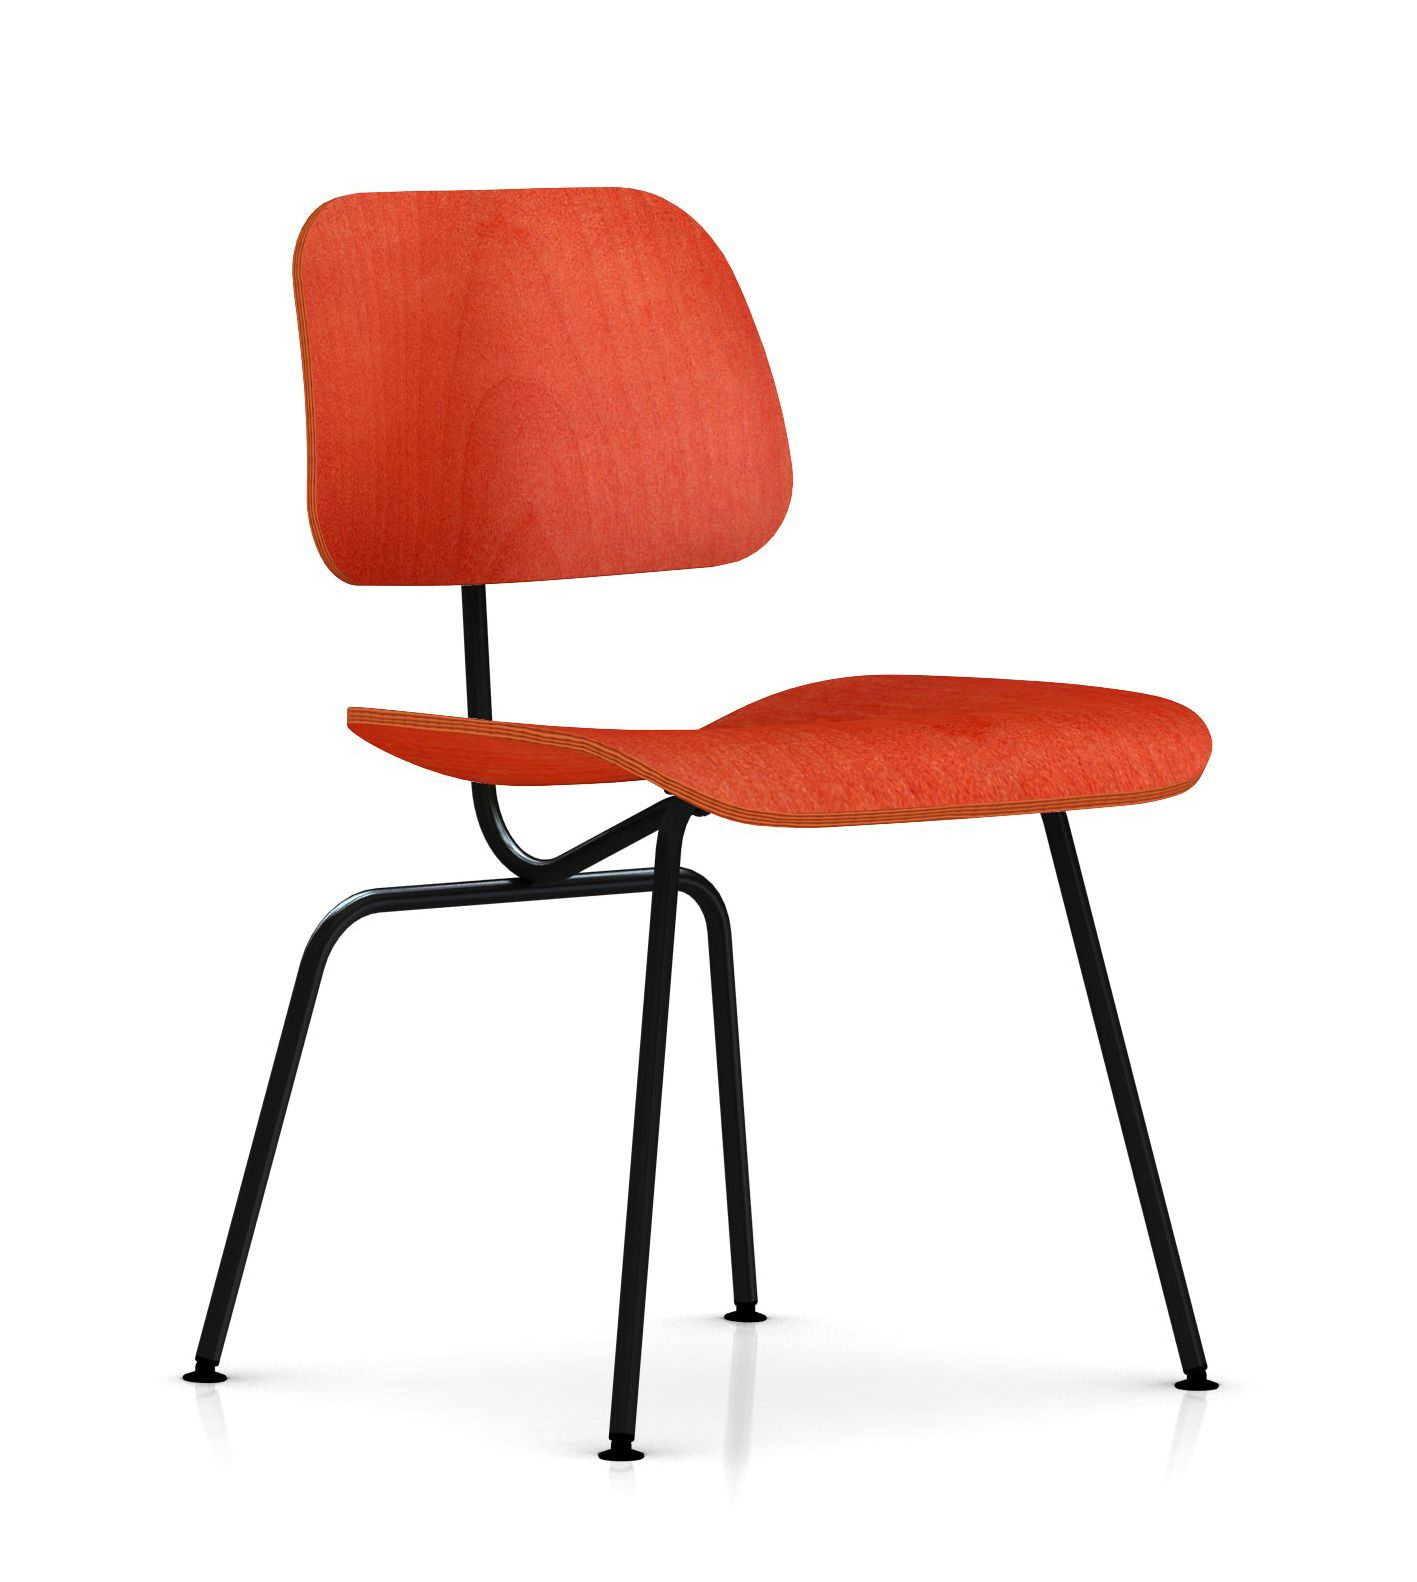 Eames Molded Plywood Dining Chair with Metal Base by